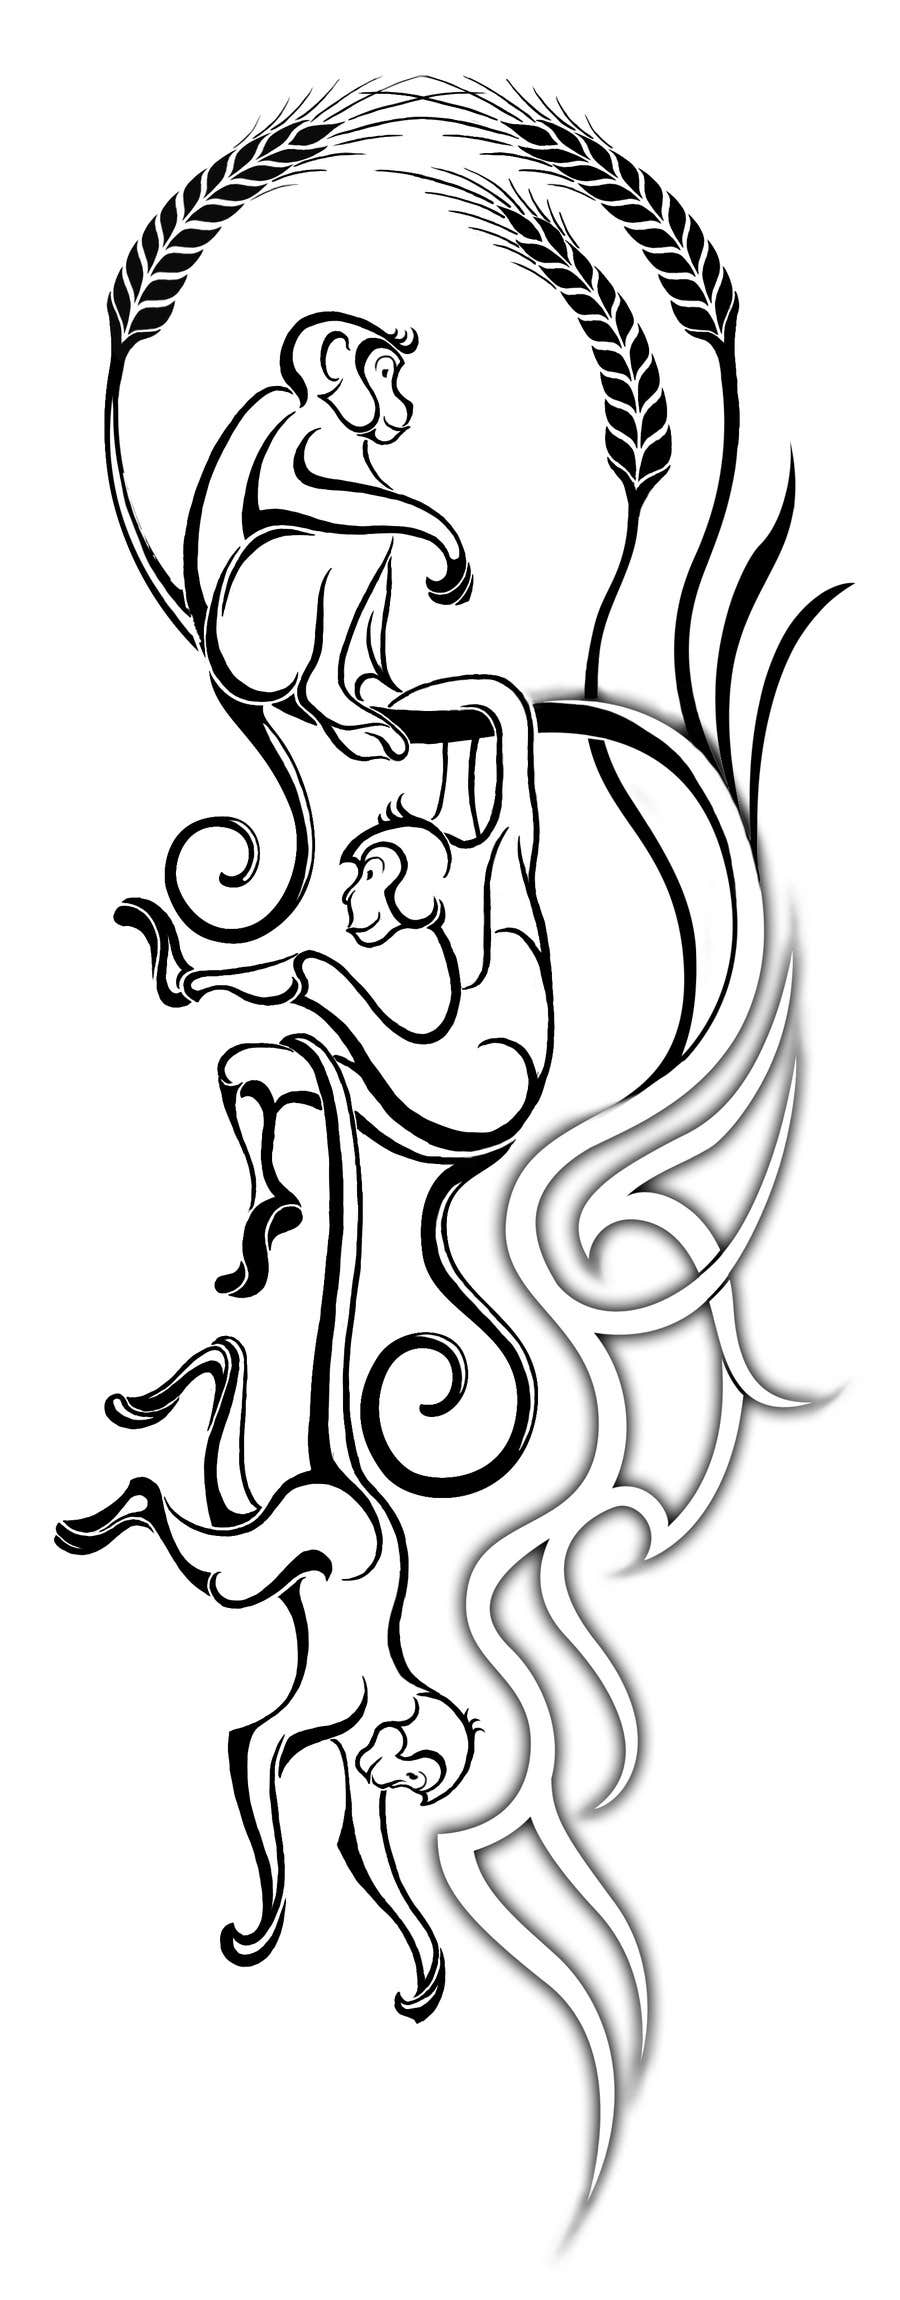 Konkurrenceindlæg #                                        9                                      for                                         I need some Creative Design for MY FIRST TATTOO